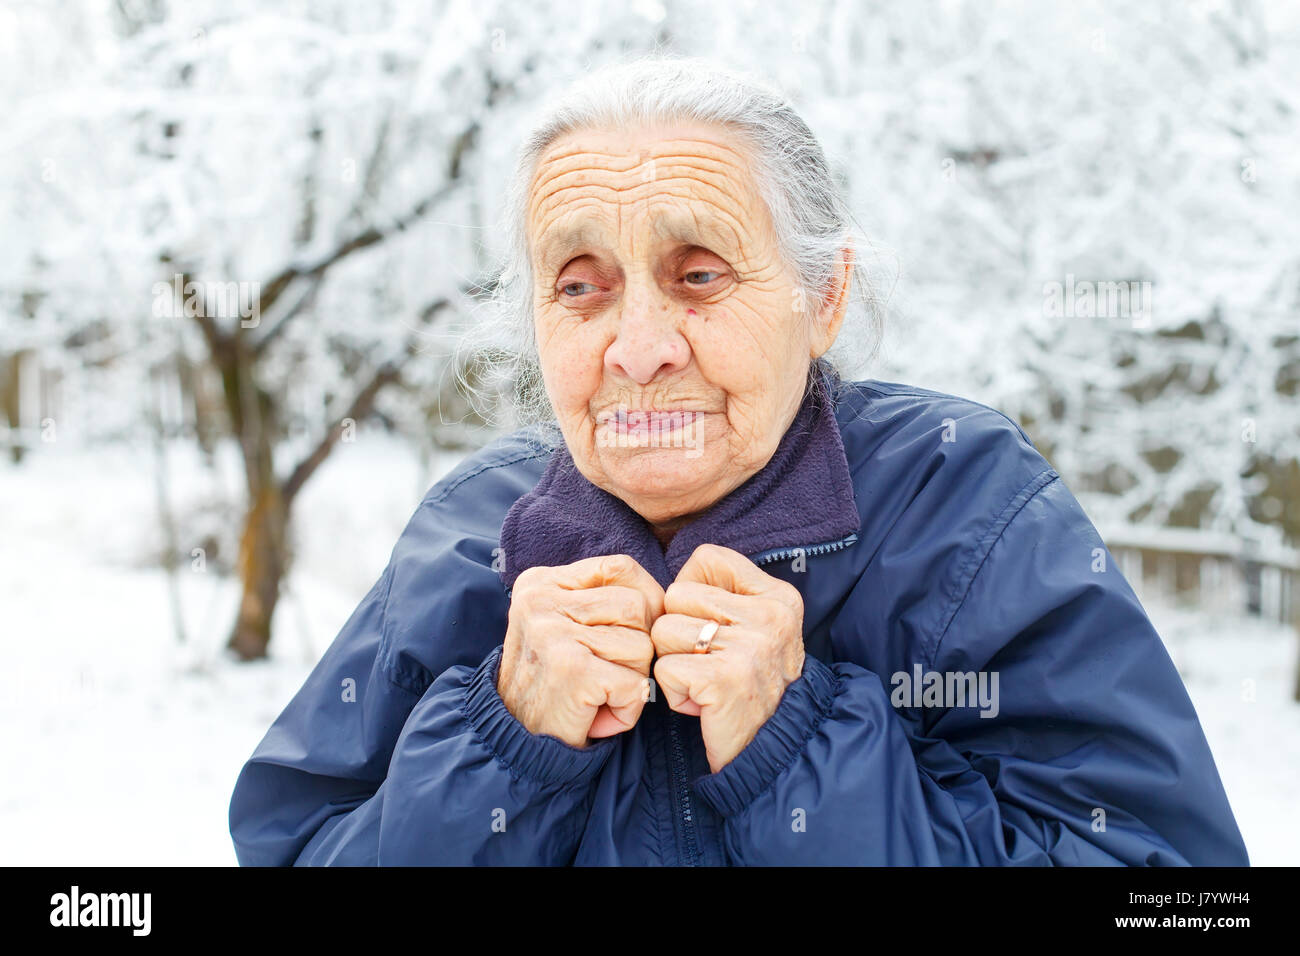 Portrait of an old lady feeling cold on wintertime - Stock Image